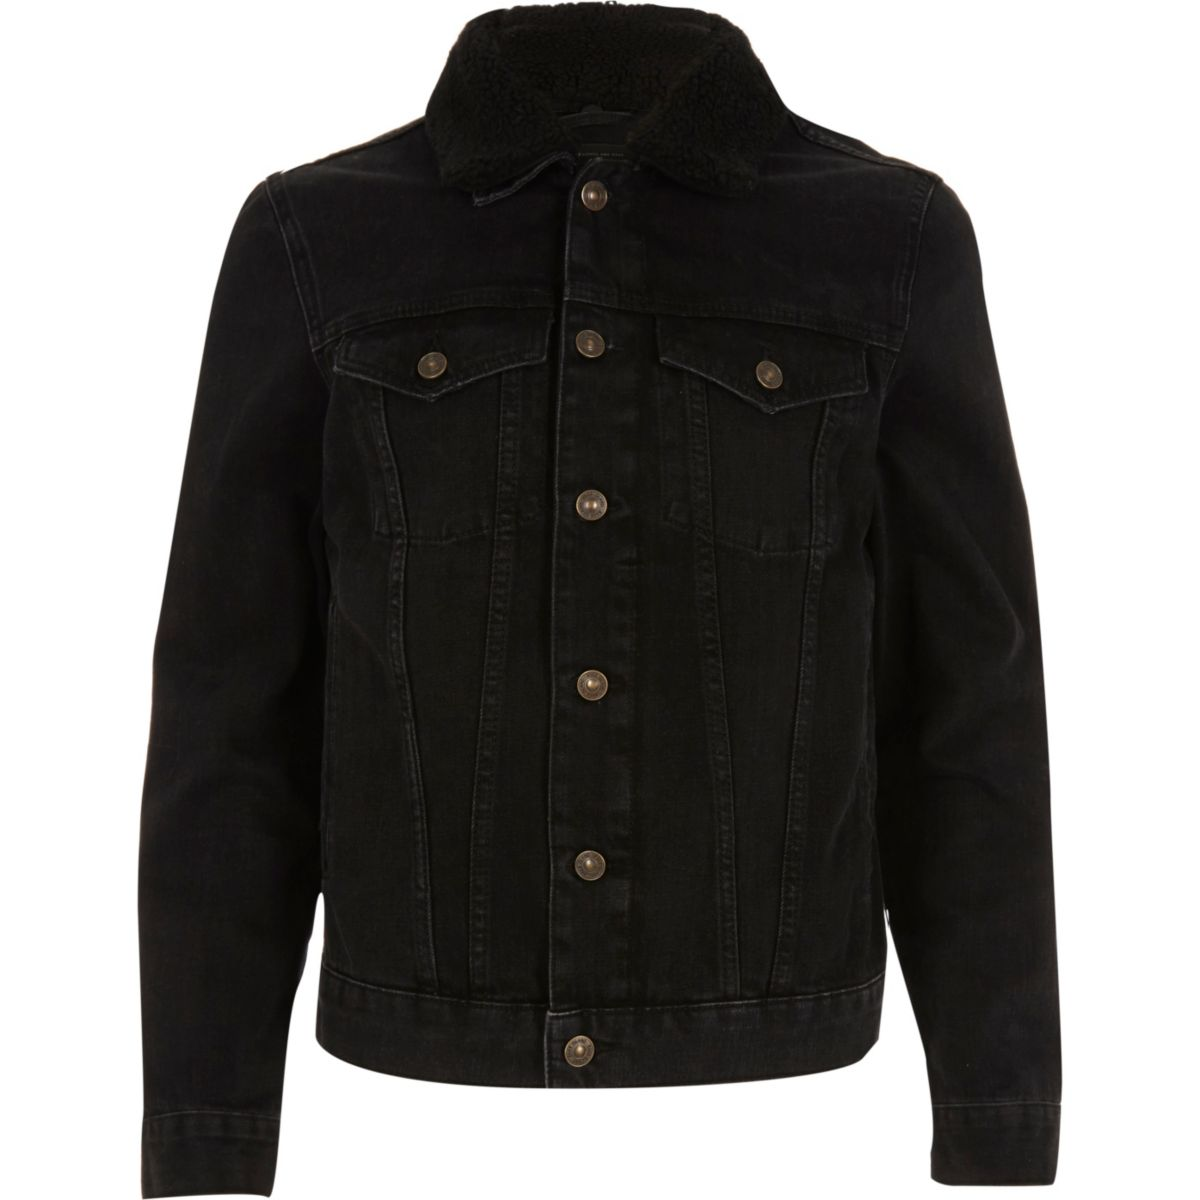 Black washed borg collar denim jacket - Coats & Jackets - Sale - men